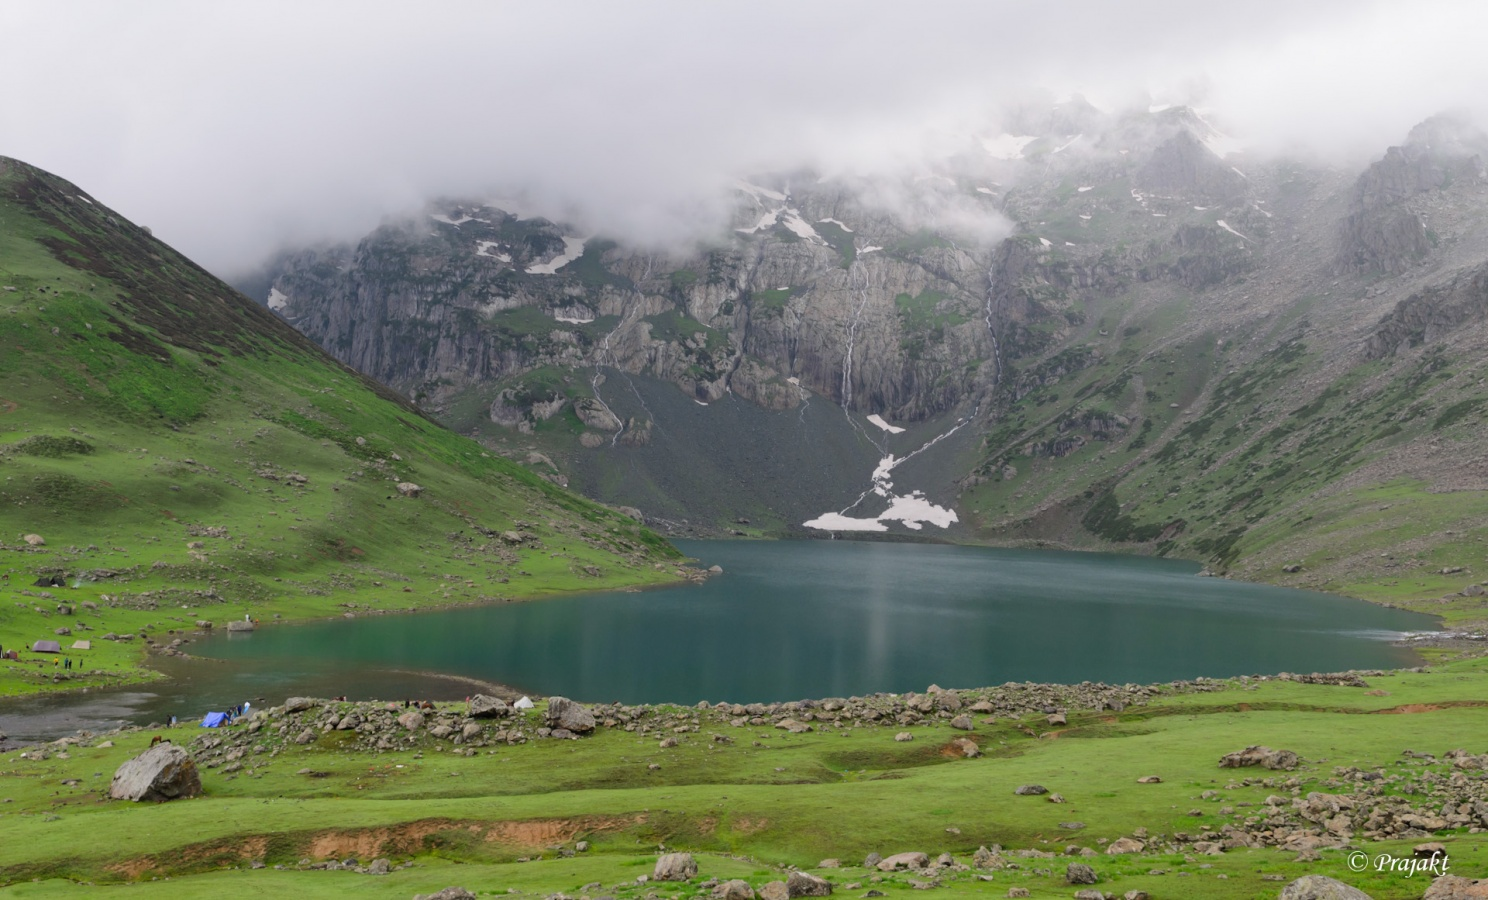 First view of small Gangabal lake and Harmukh peak in rain.jpg